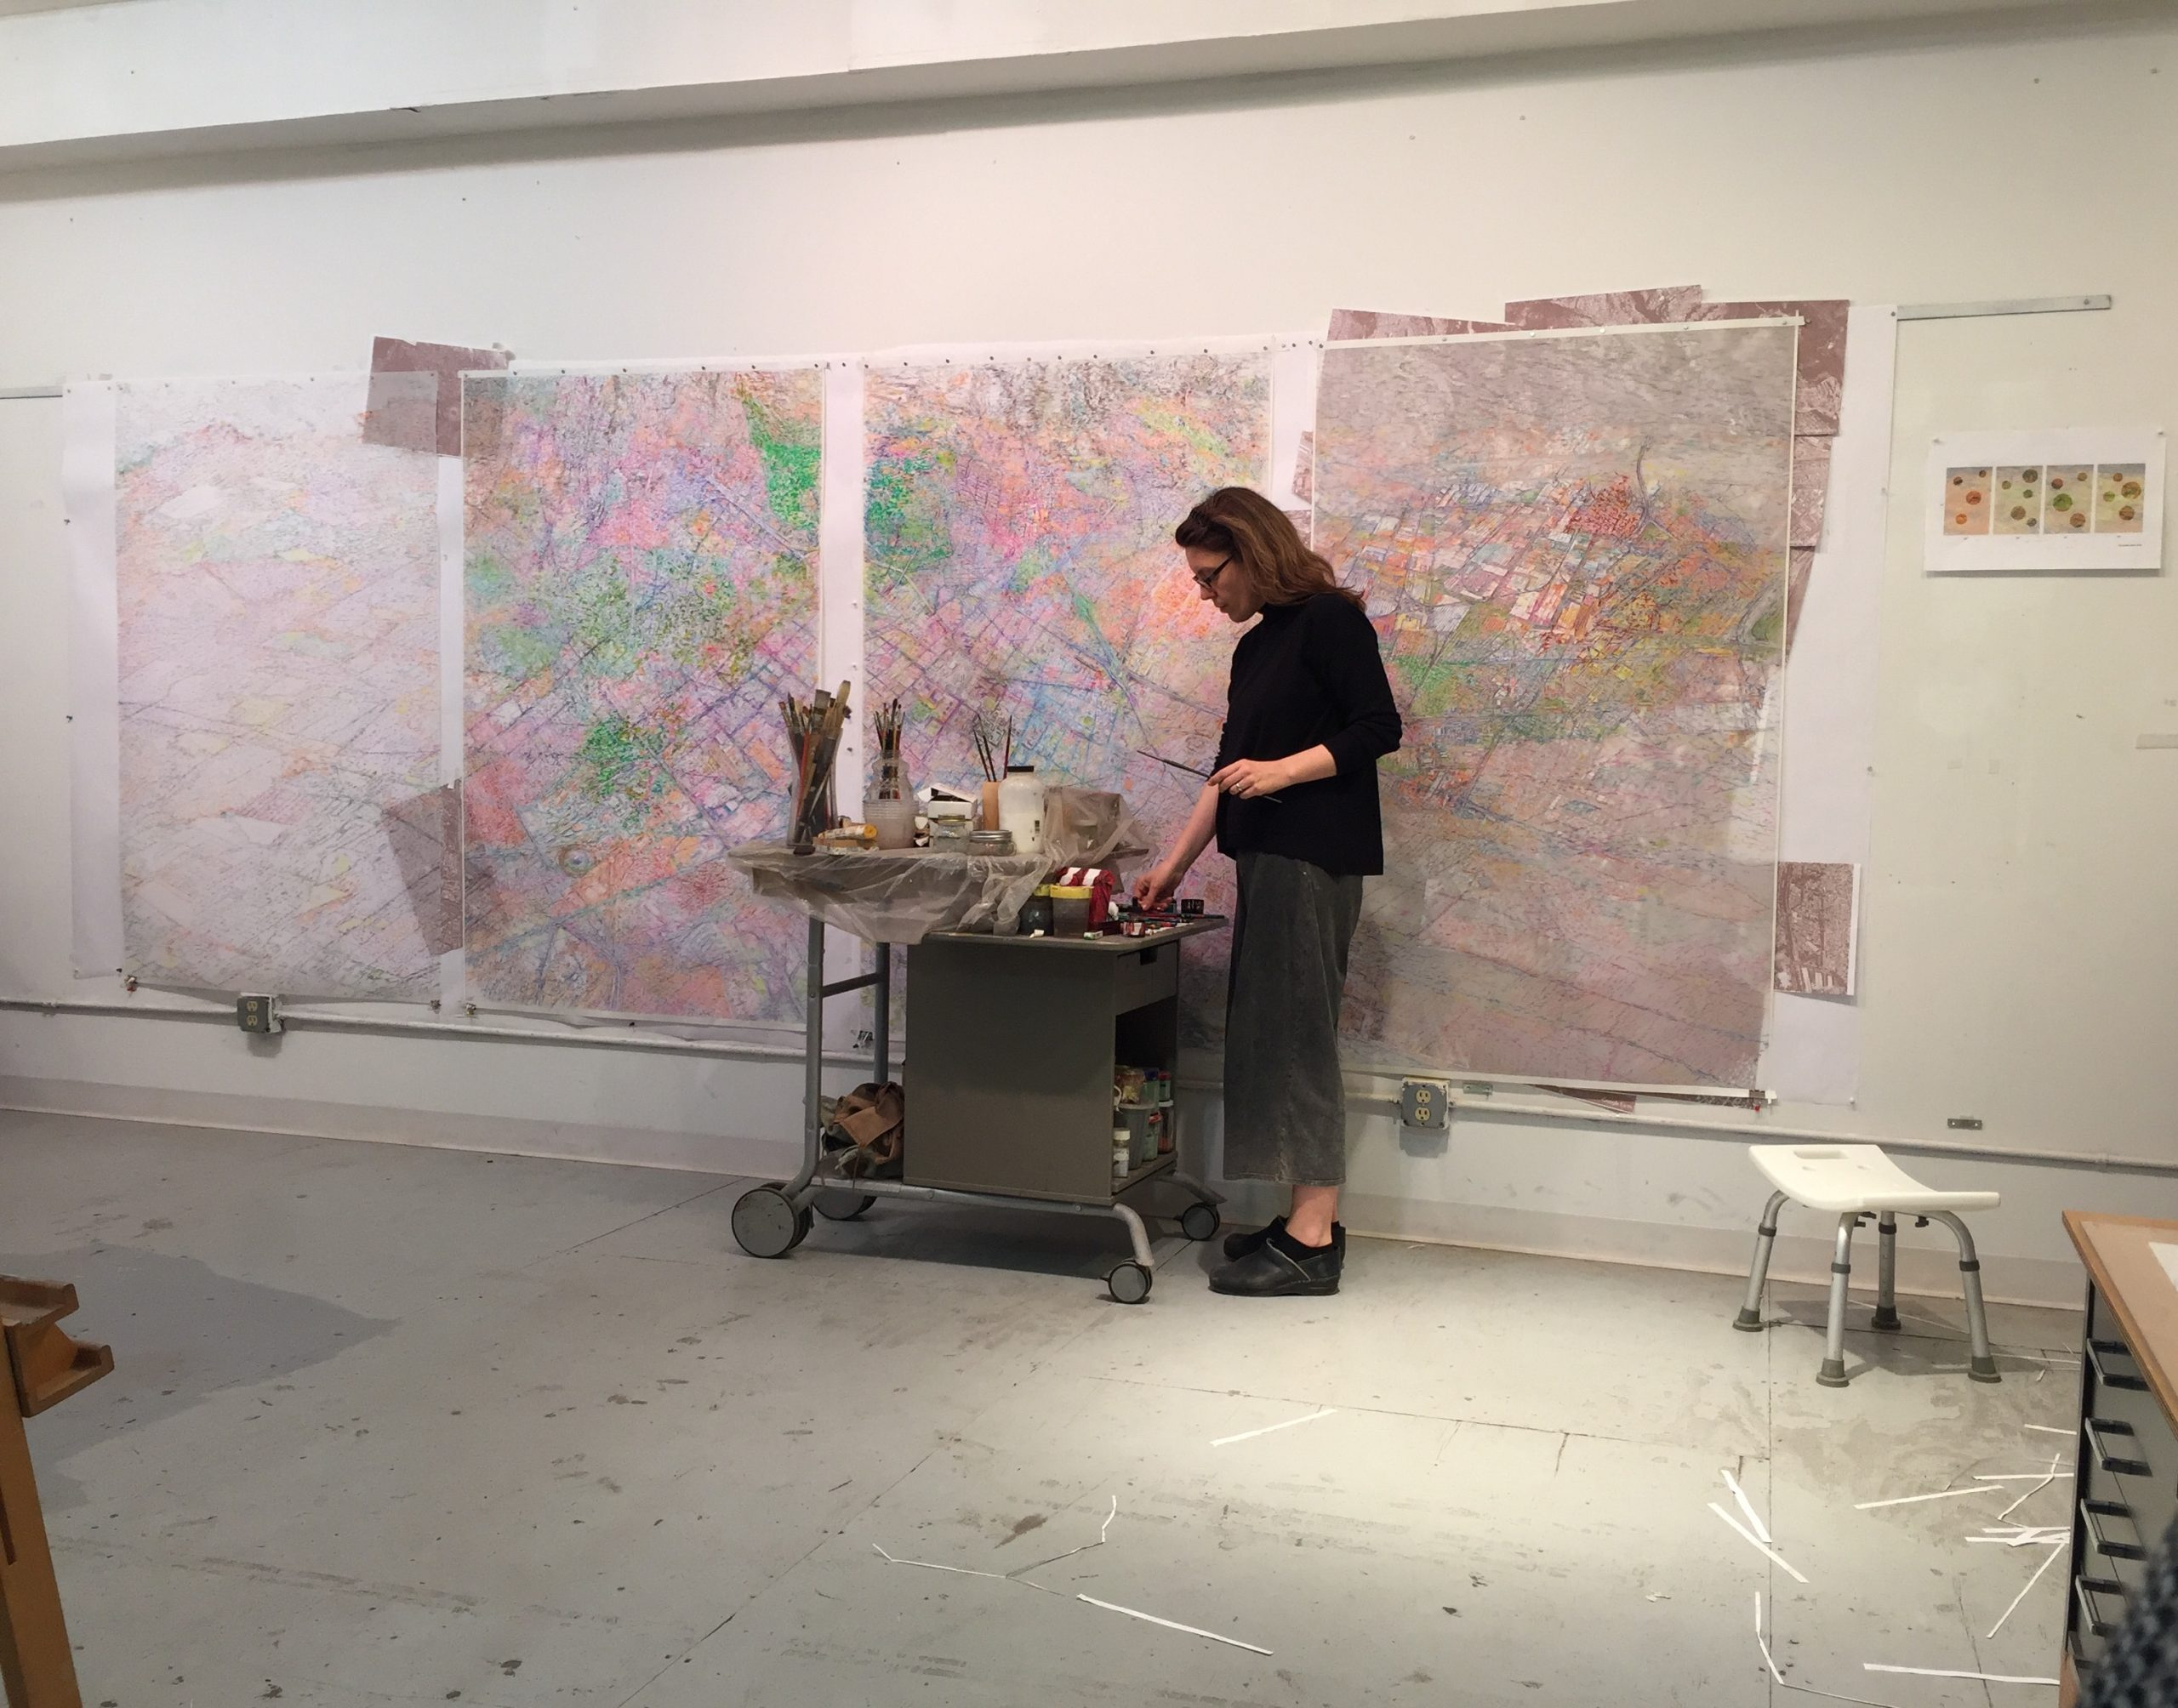 Simonetta Moro at work on the panels representing a view of Mexico City